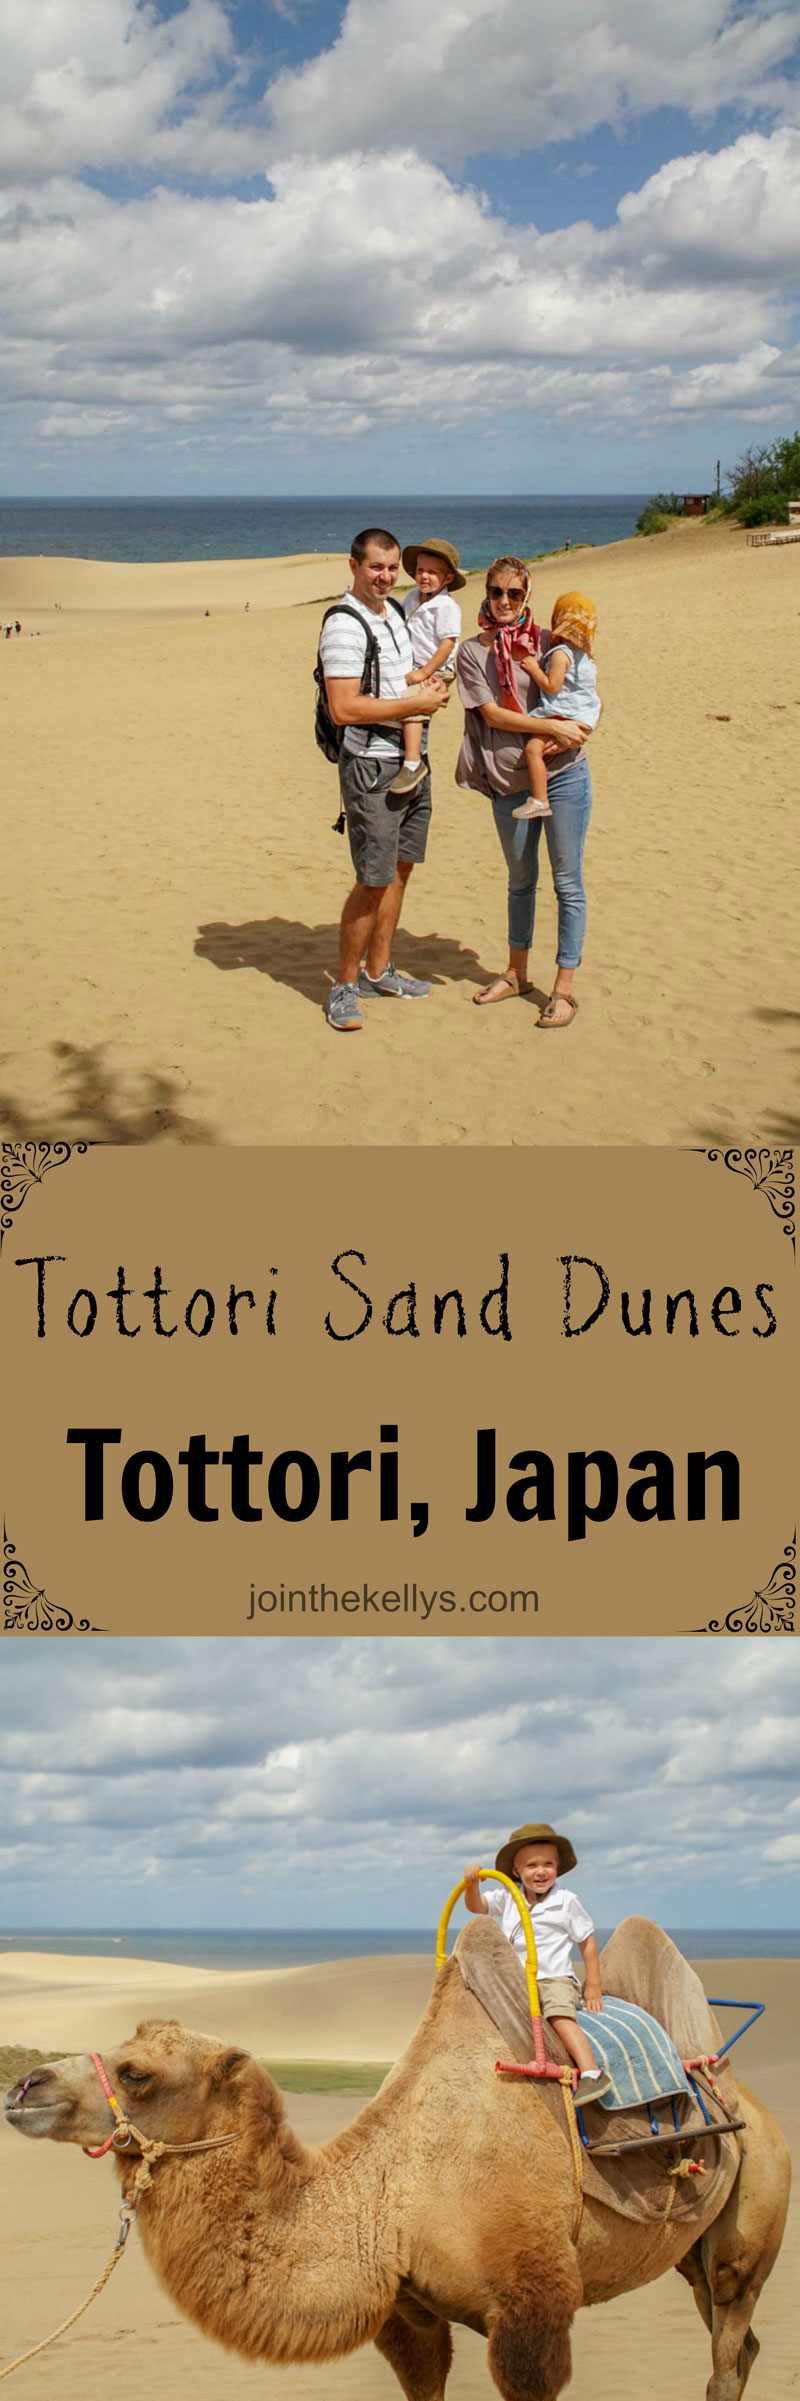 Family adventure to the Tottori Sand Dunes